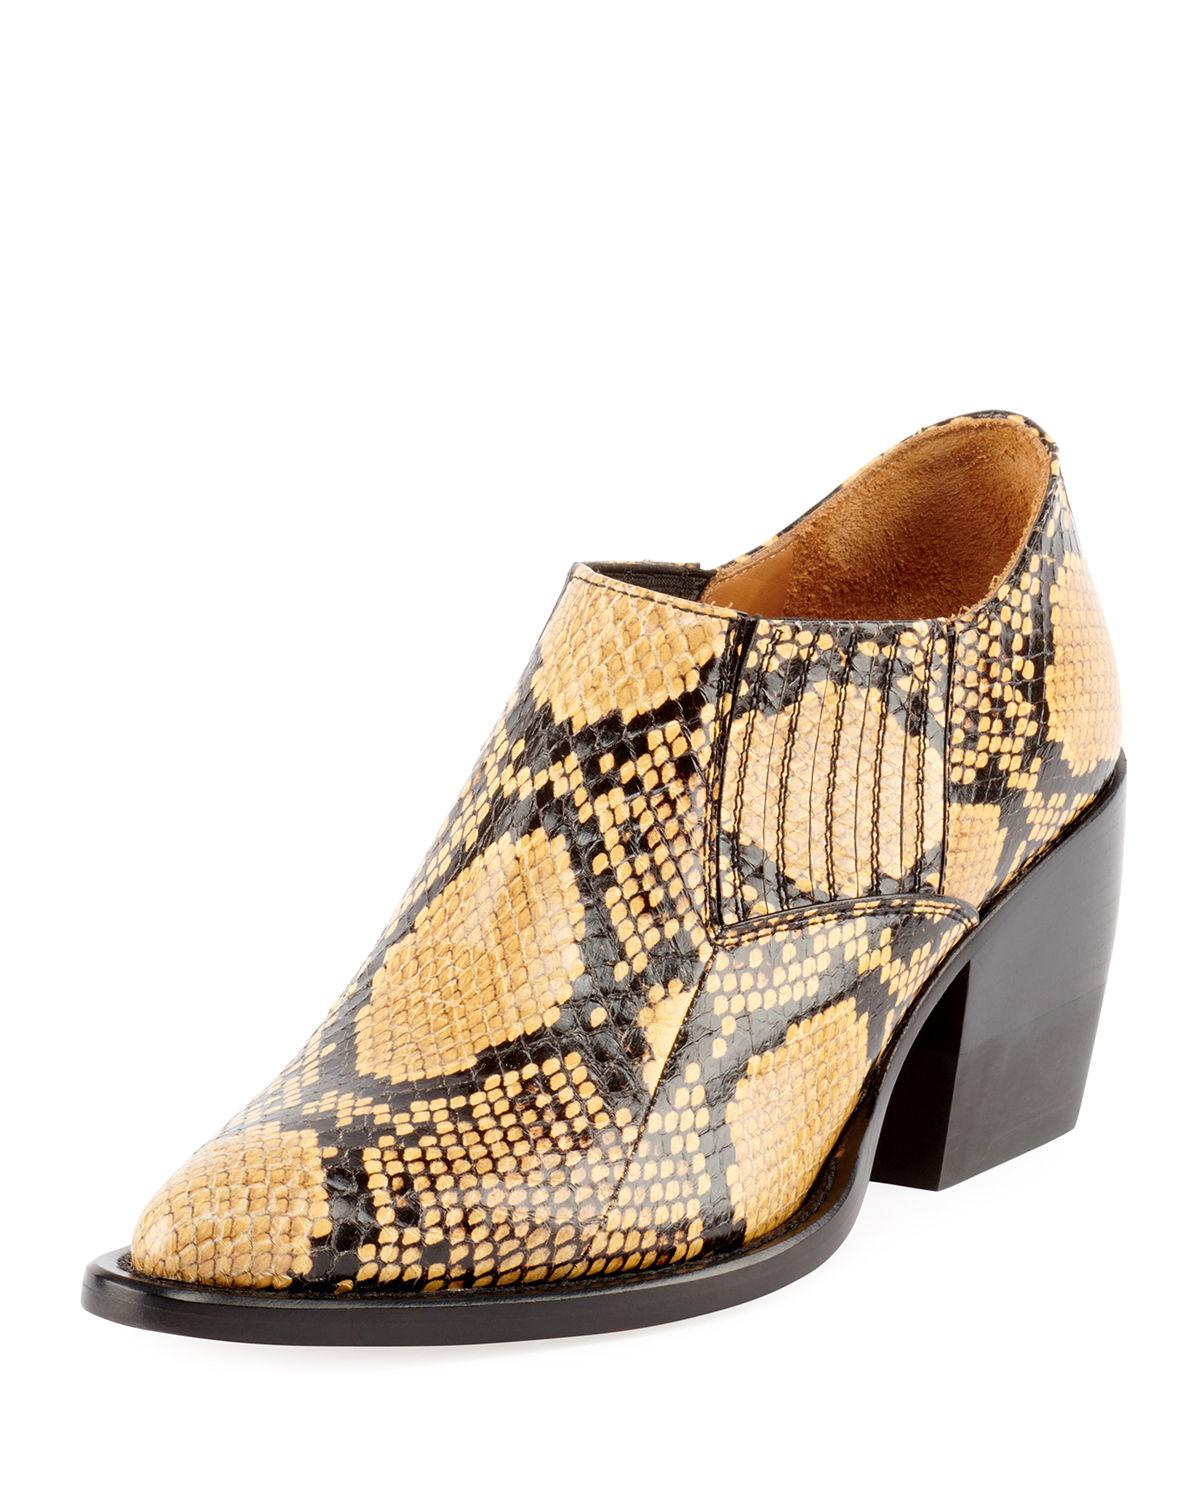 a1bd57c45 Lyst - Chloé Rylee Python-embossed Ankle Bootie in Natural - Save 40%